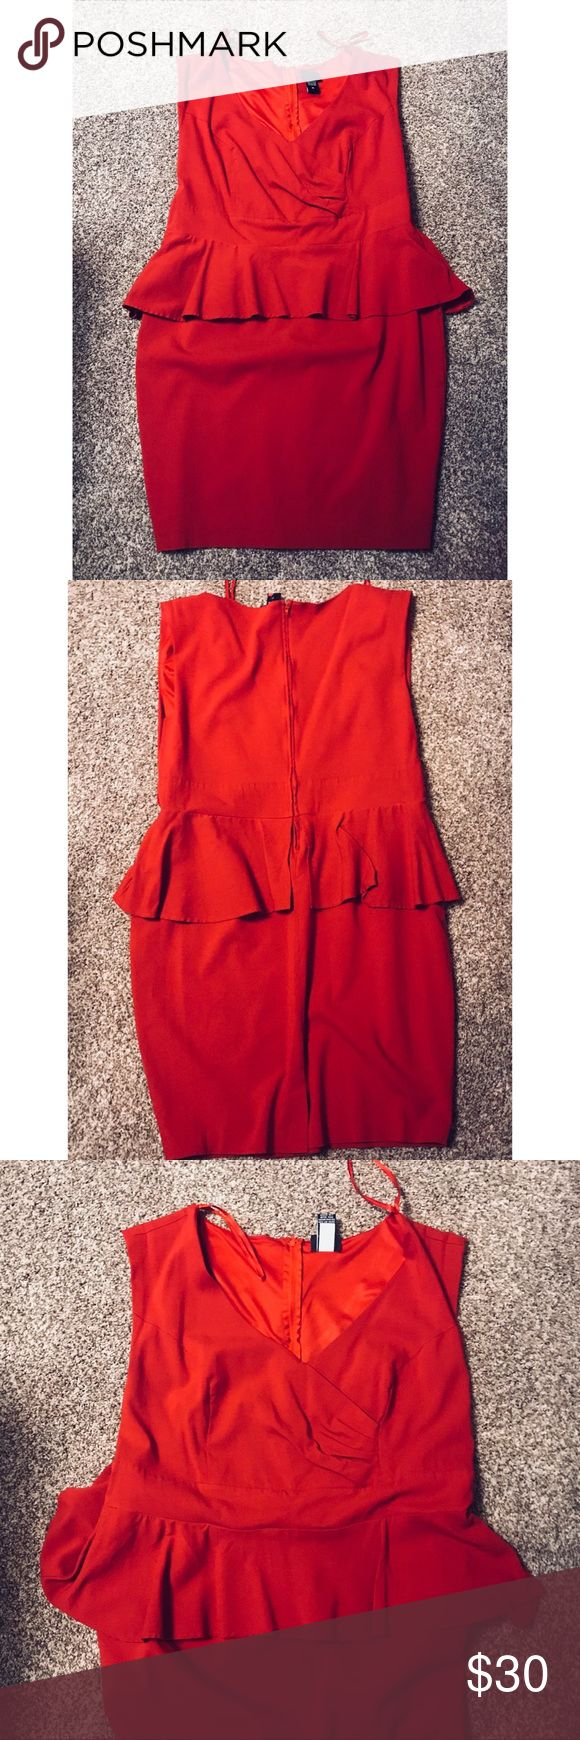 """Torrid 18 Gorgeous Hot Red Peplum Sleeveless Dress This gorgeous peplum dress is a size 18 and in excellent condition! Ponte fabric has a little stretch to it! Zipper closure in the back and a beautiful pencil skirt on the bottom. Faux wrap waist detail and darts at the bust. V neck. Add your favorite skinny belt if you like! Tag says """"cut date 8/12."""" torrid Dresses Midi"""